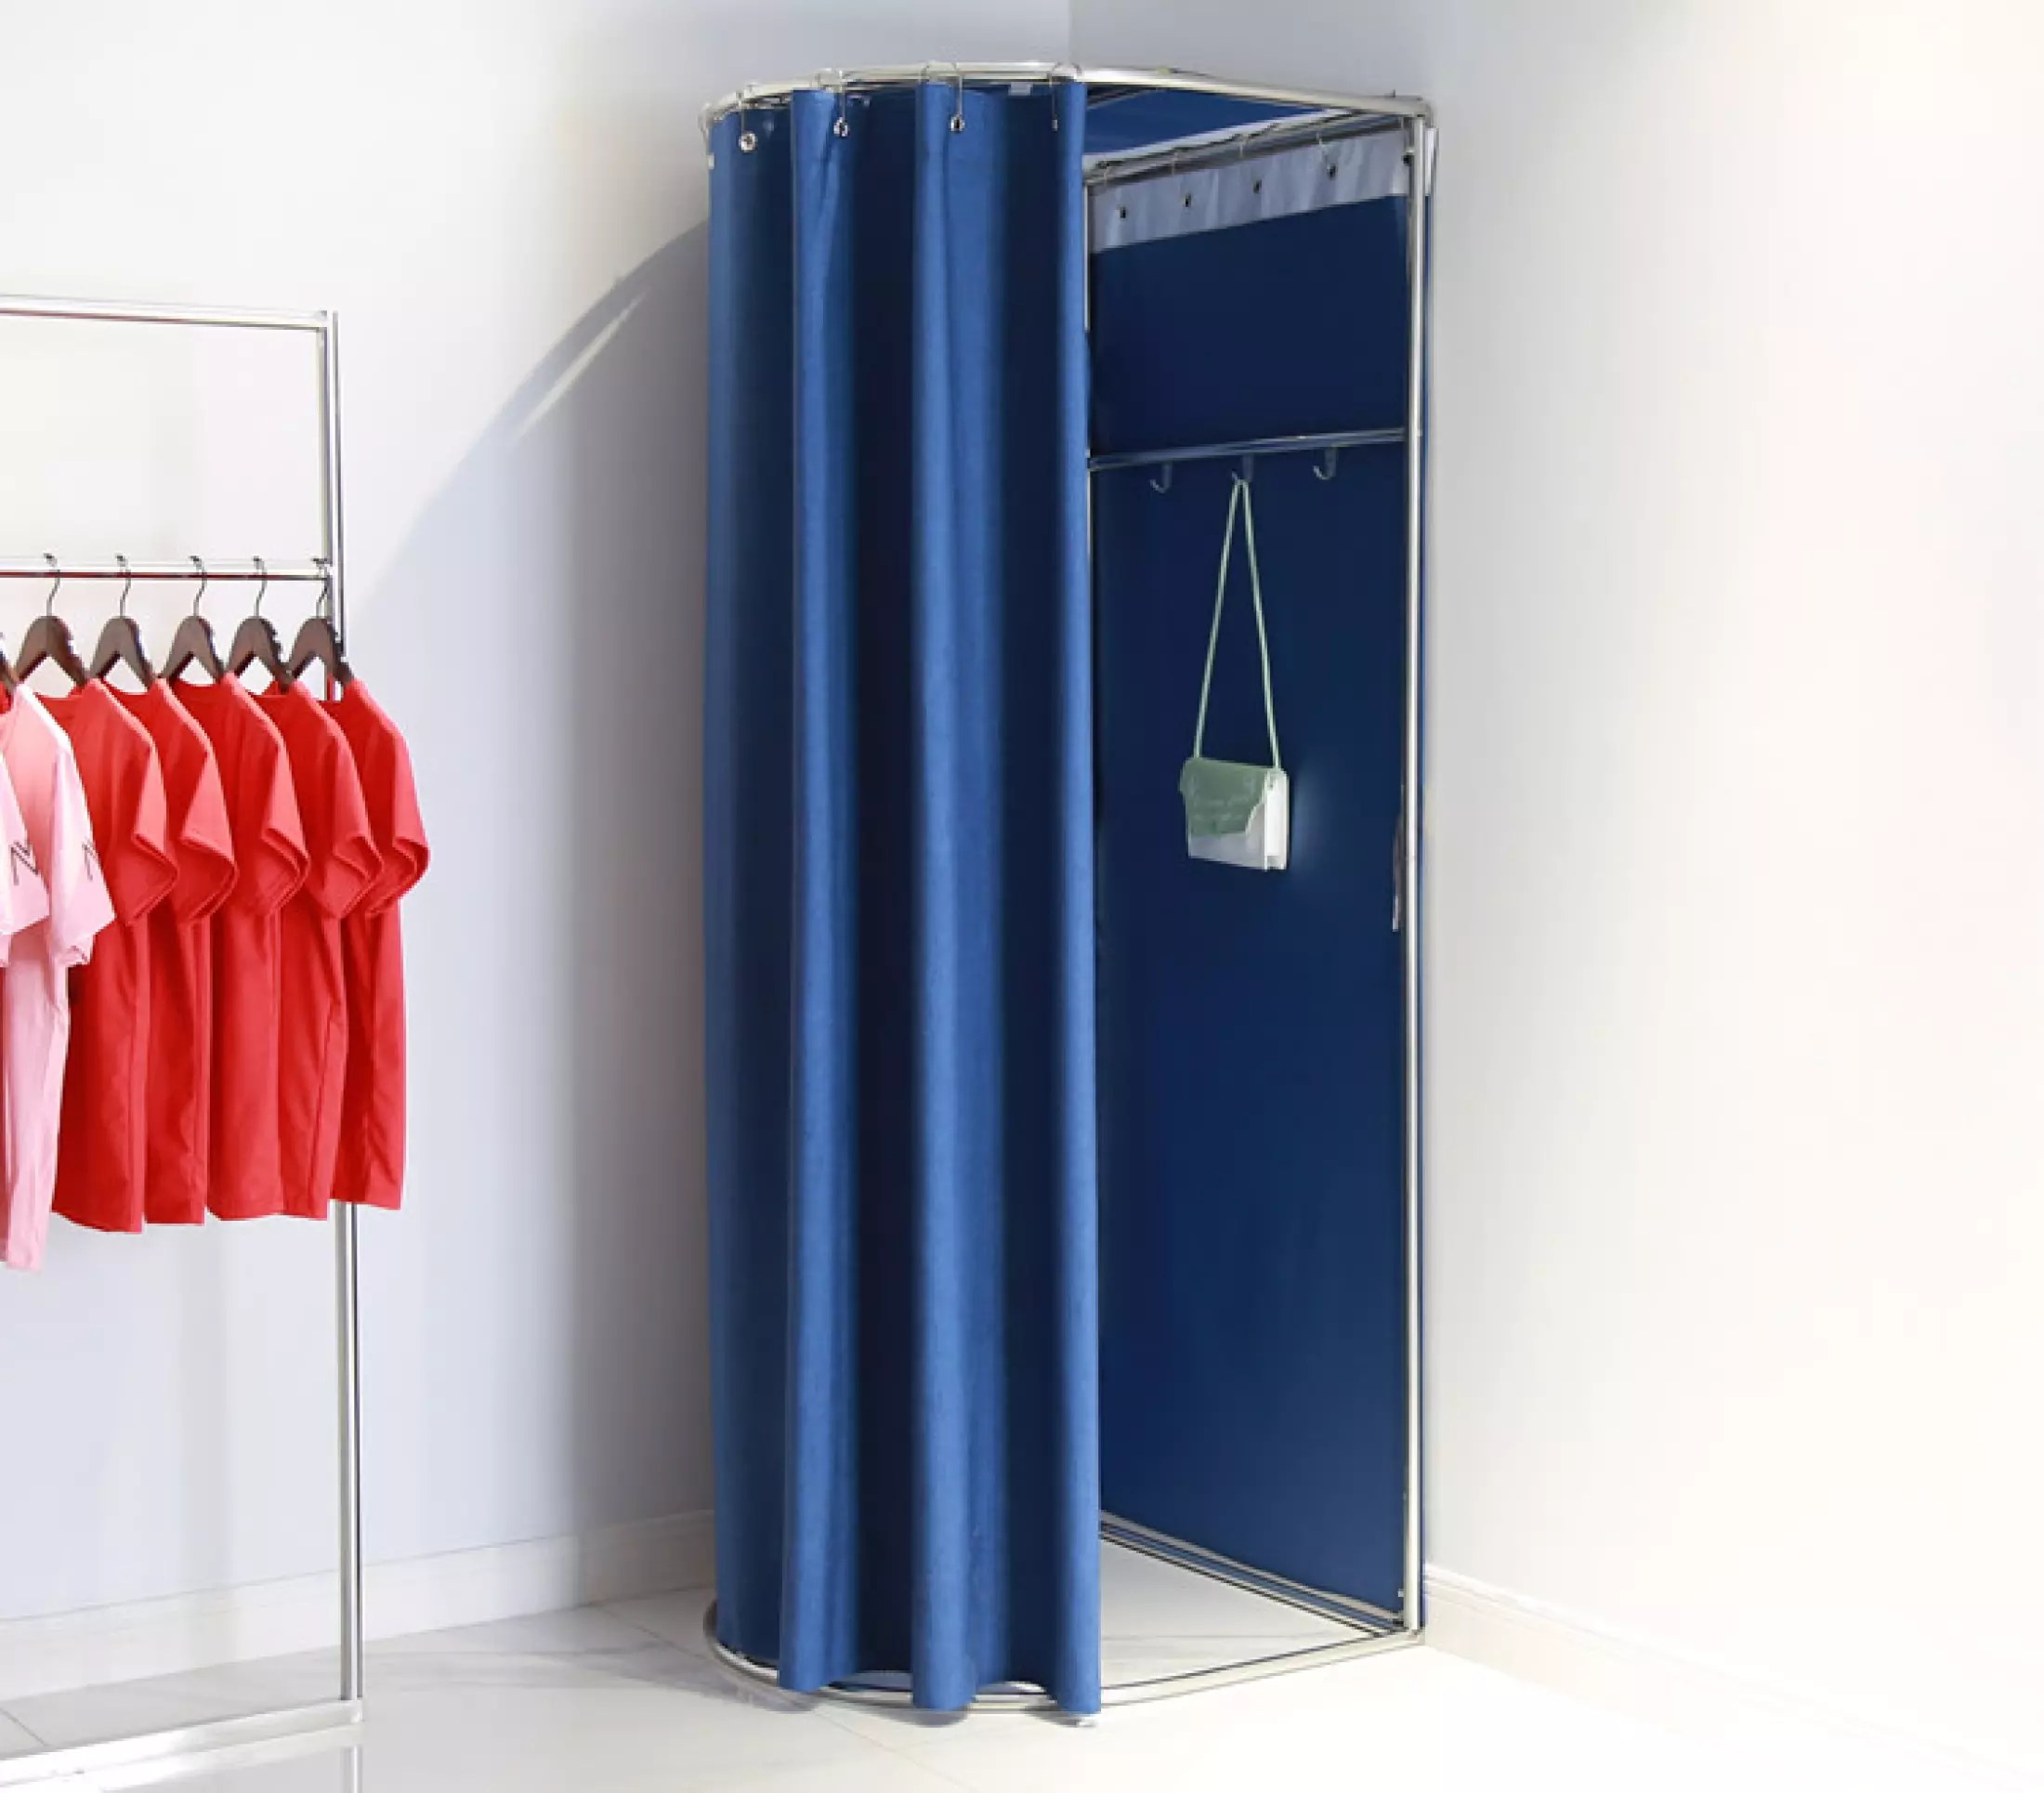 clothing store fitting room store movable changing room dressing room clothing store hanger activity fitting room door curtain